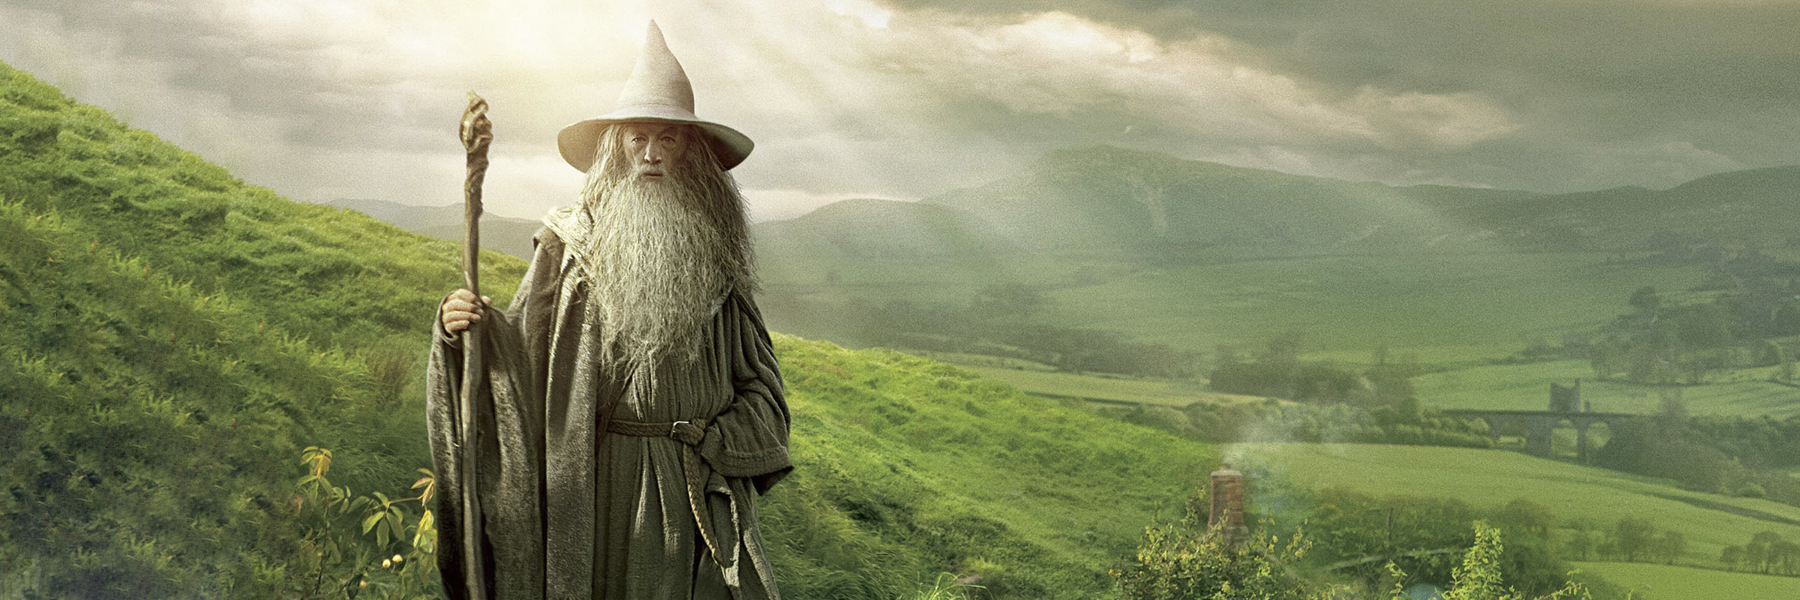 Lo Hobbit - Un viaggio insapettato Streaming